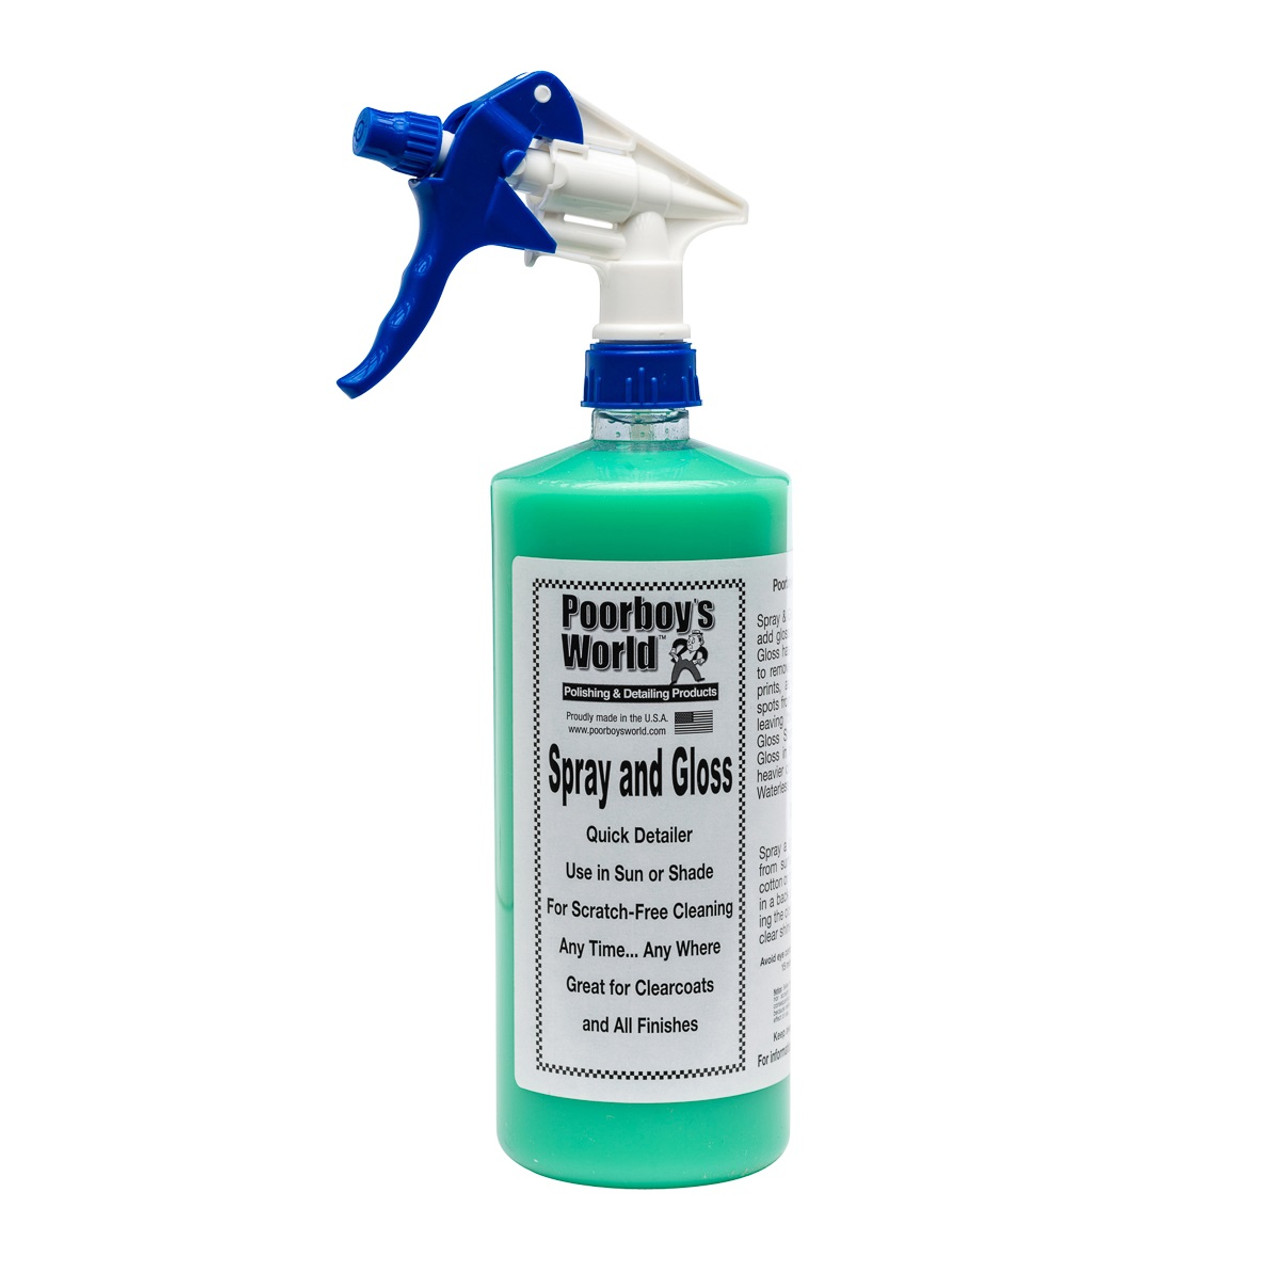 Poorboy's World Spray and Gloss 32oz w/Sprayer